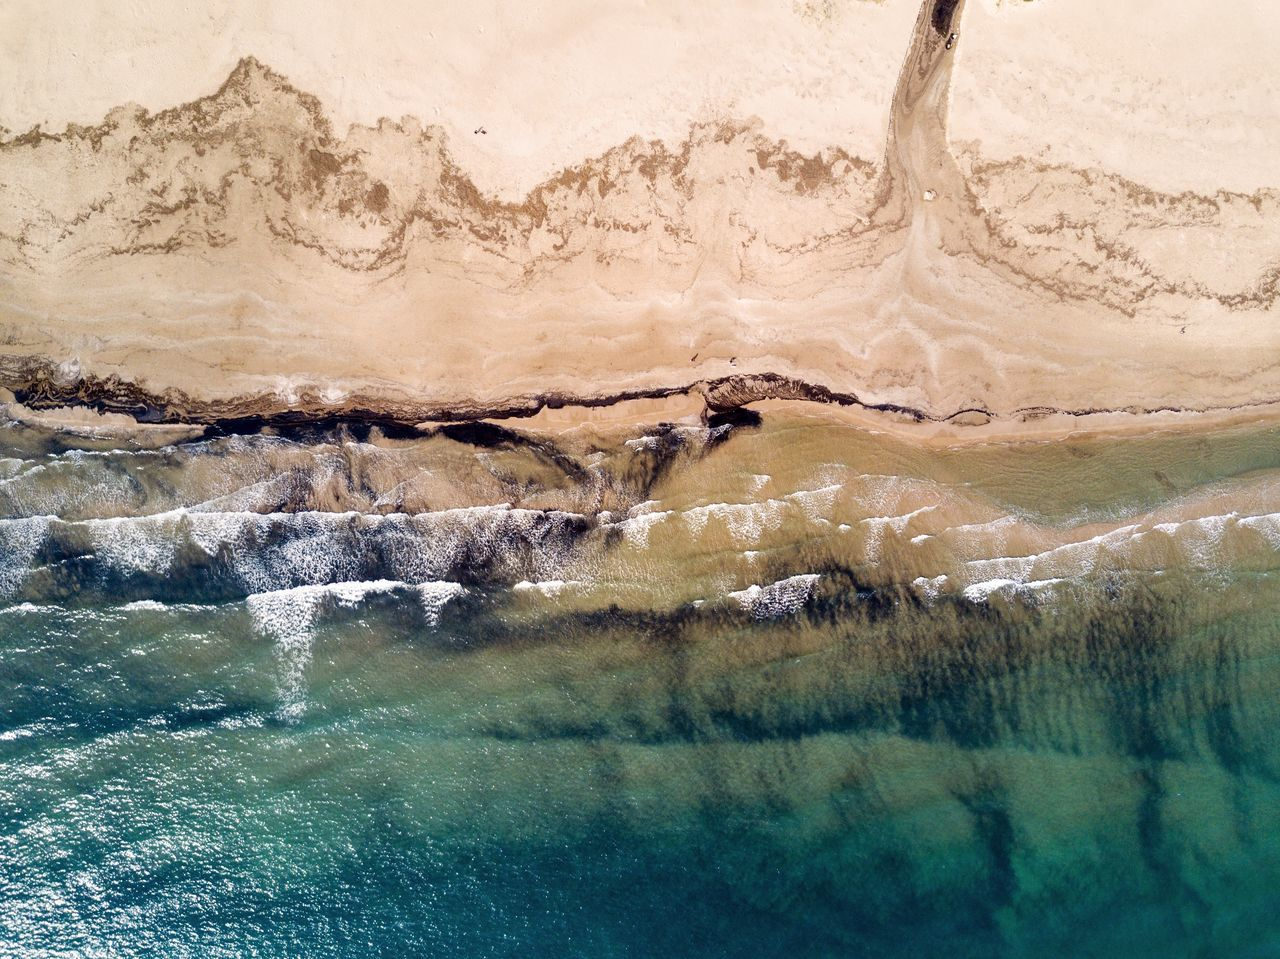 Distant shores Water Waterfront Nature Beauty In Nature Day Motion Outdoors No People Scenics Power In Nature Waterfall Drone  Comunitat Valenciana València Dronephotography Aerial View Mediterranean